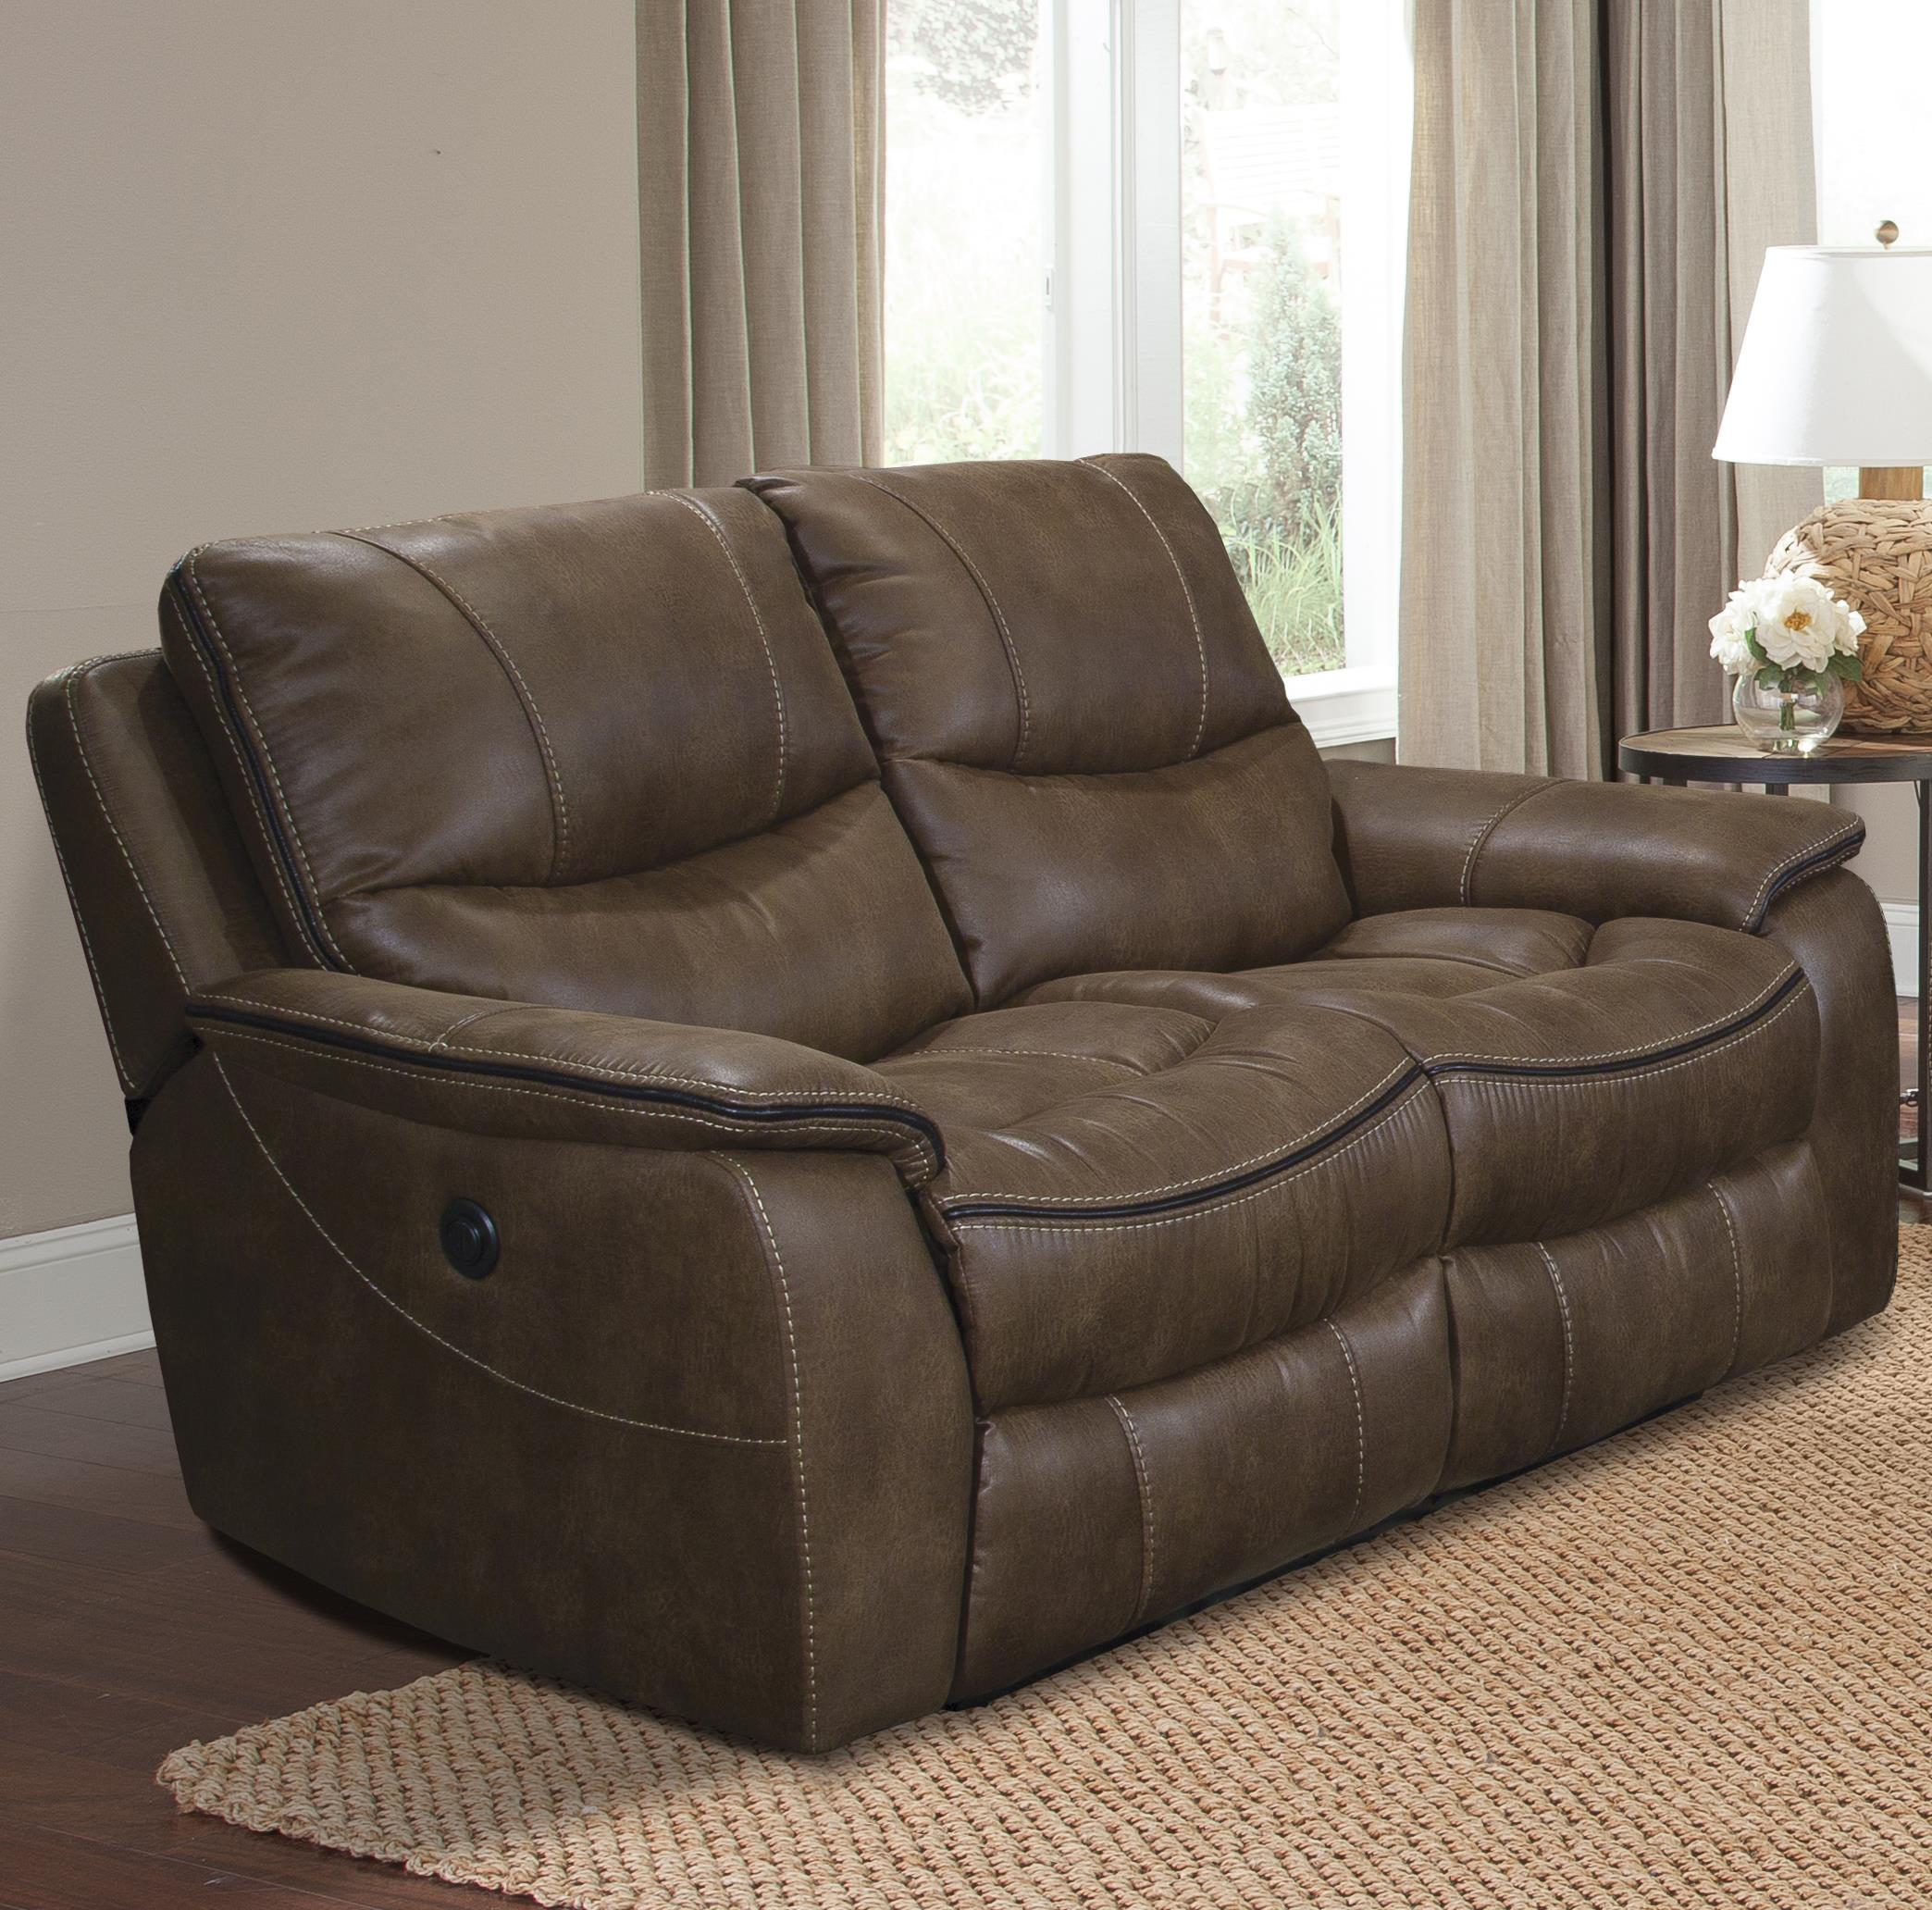 Parker Living Remus Casual Power Loveseat Dual Recliner - Item Number: MREM-822P-ST